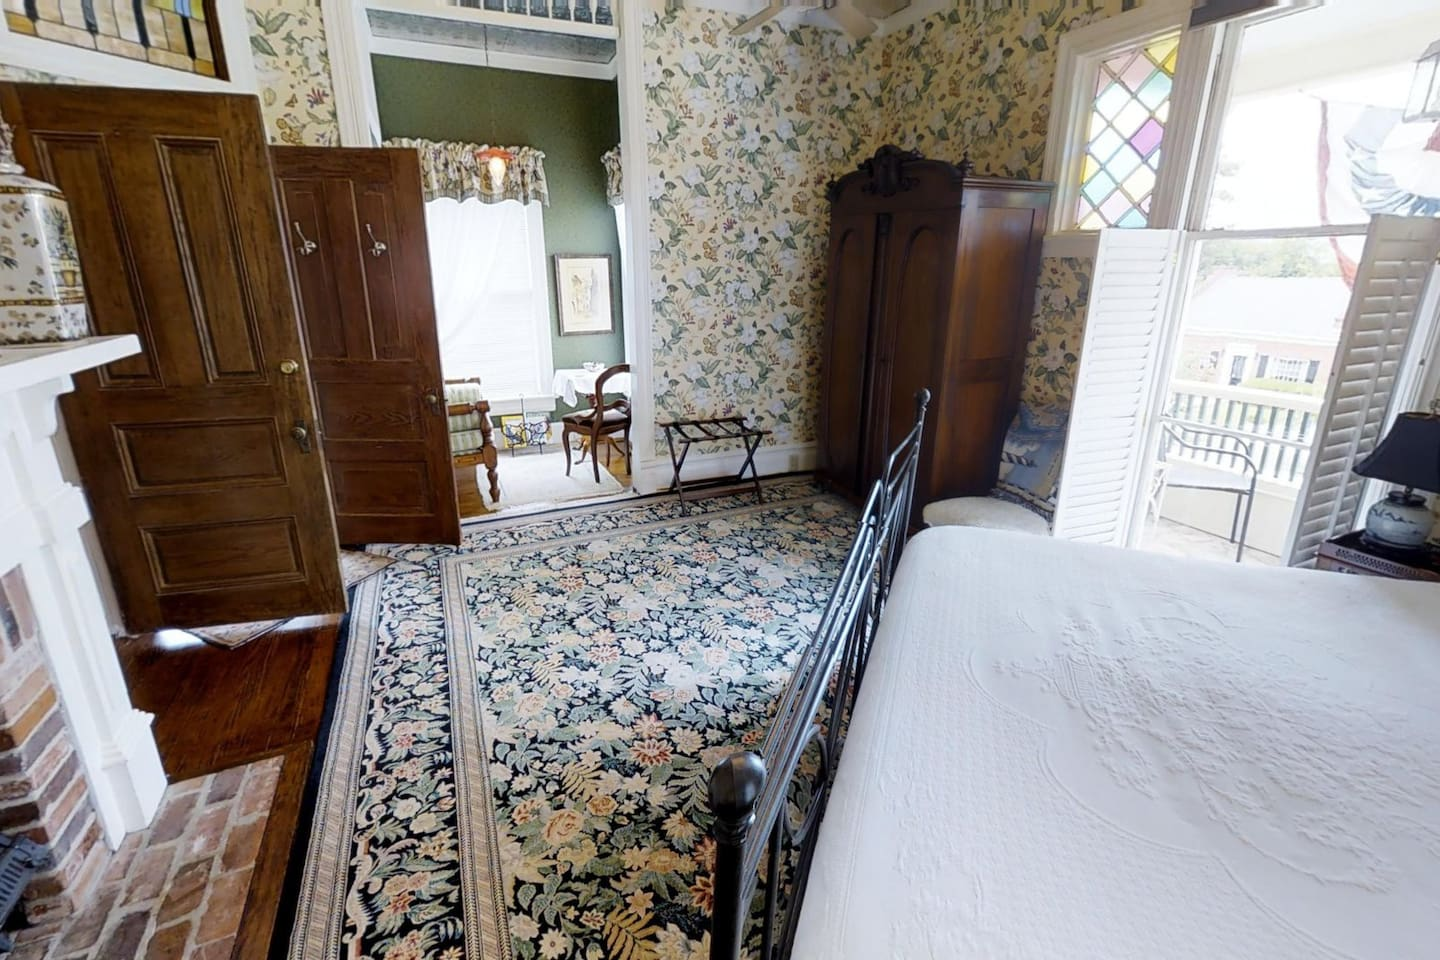 German Mill Room has a king. bed, private bath with spa tub, separate shower sitting area, and balcony